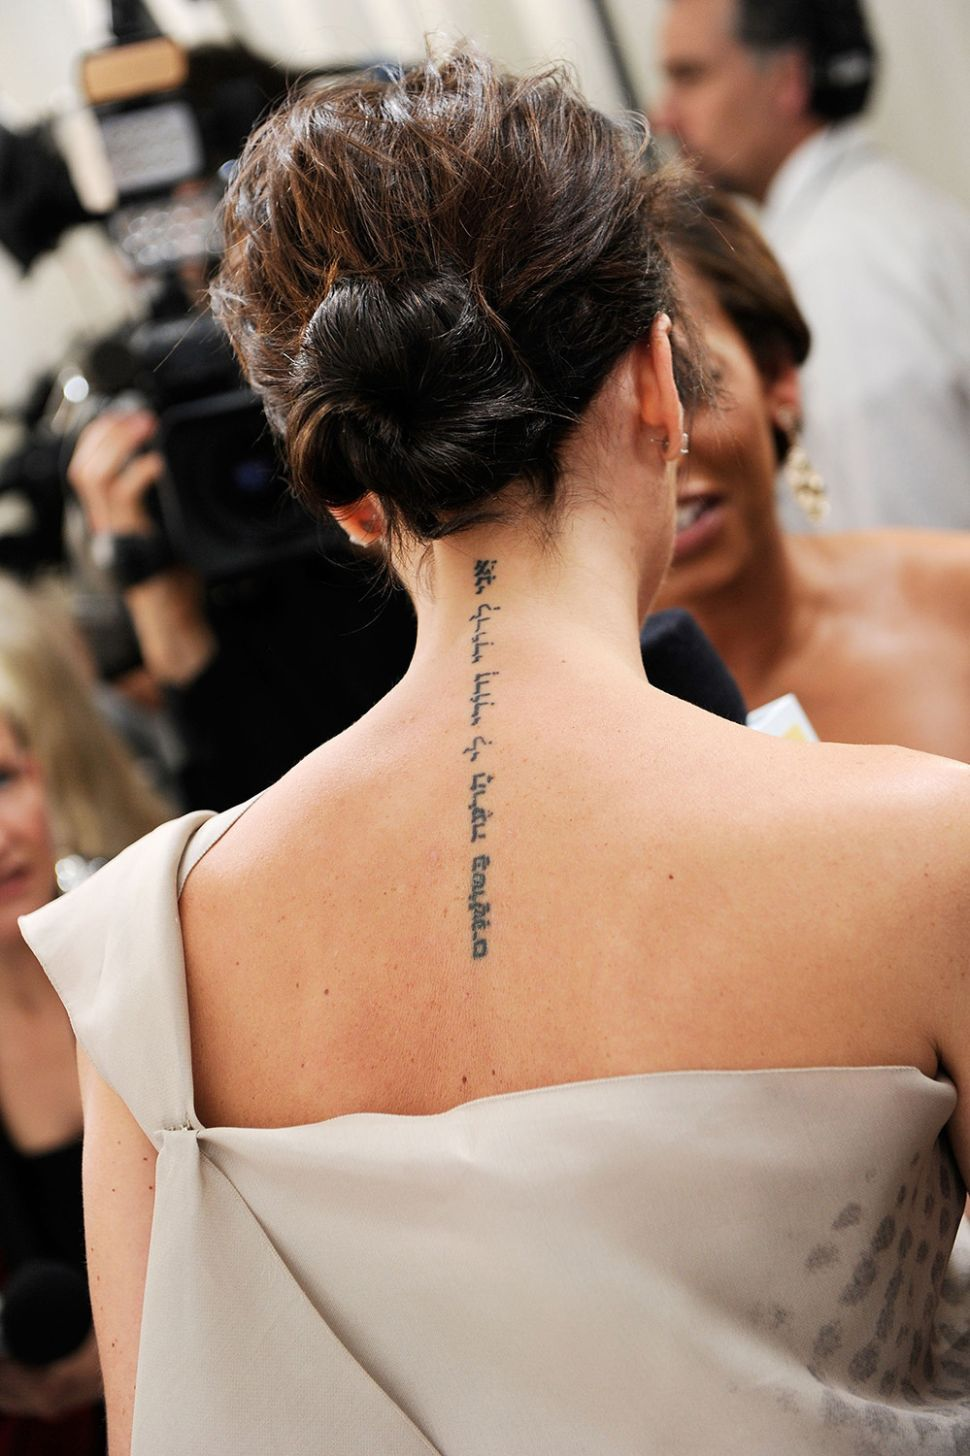 Think Before You Ink: New Removal Machine Lessens Tattoo Regret